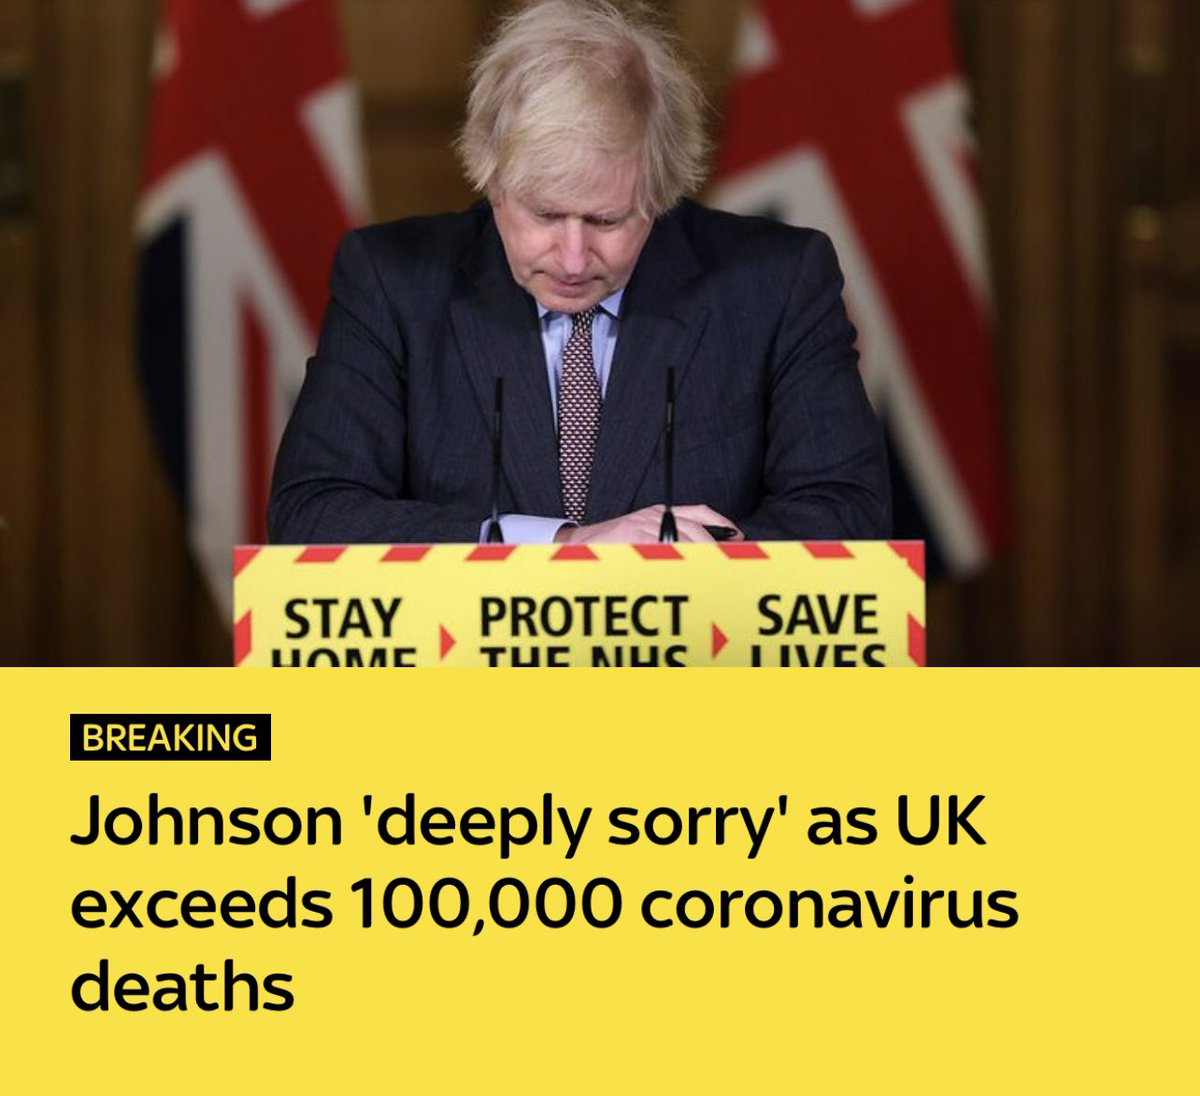 """Deeply sorry but takes no responsibility for 100,000 deaths and says """"we did everything that we could to minimise suffering and minimise loss of life"""" Johnson admits no error, nothing could have been done differently. Shameless."""